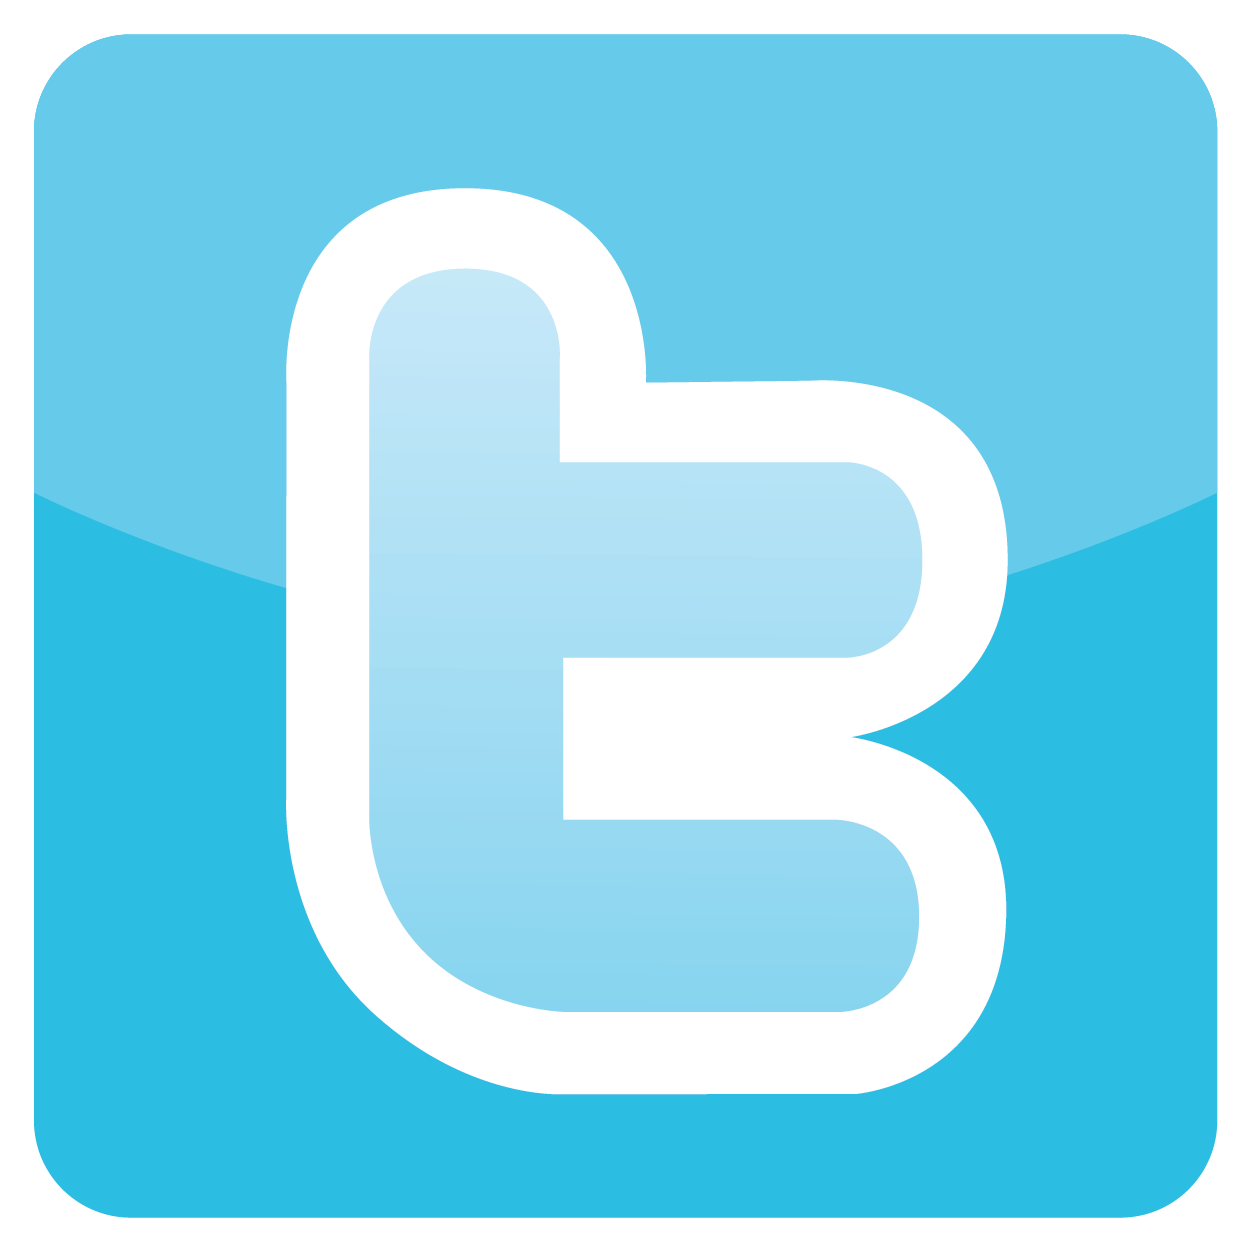 twitter_PNG27.png